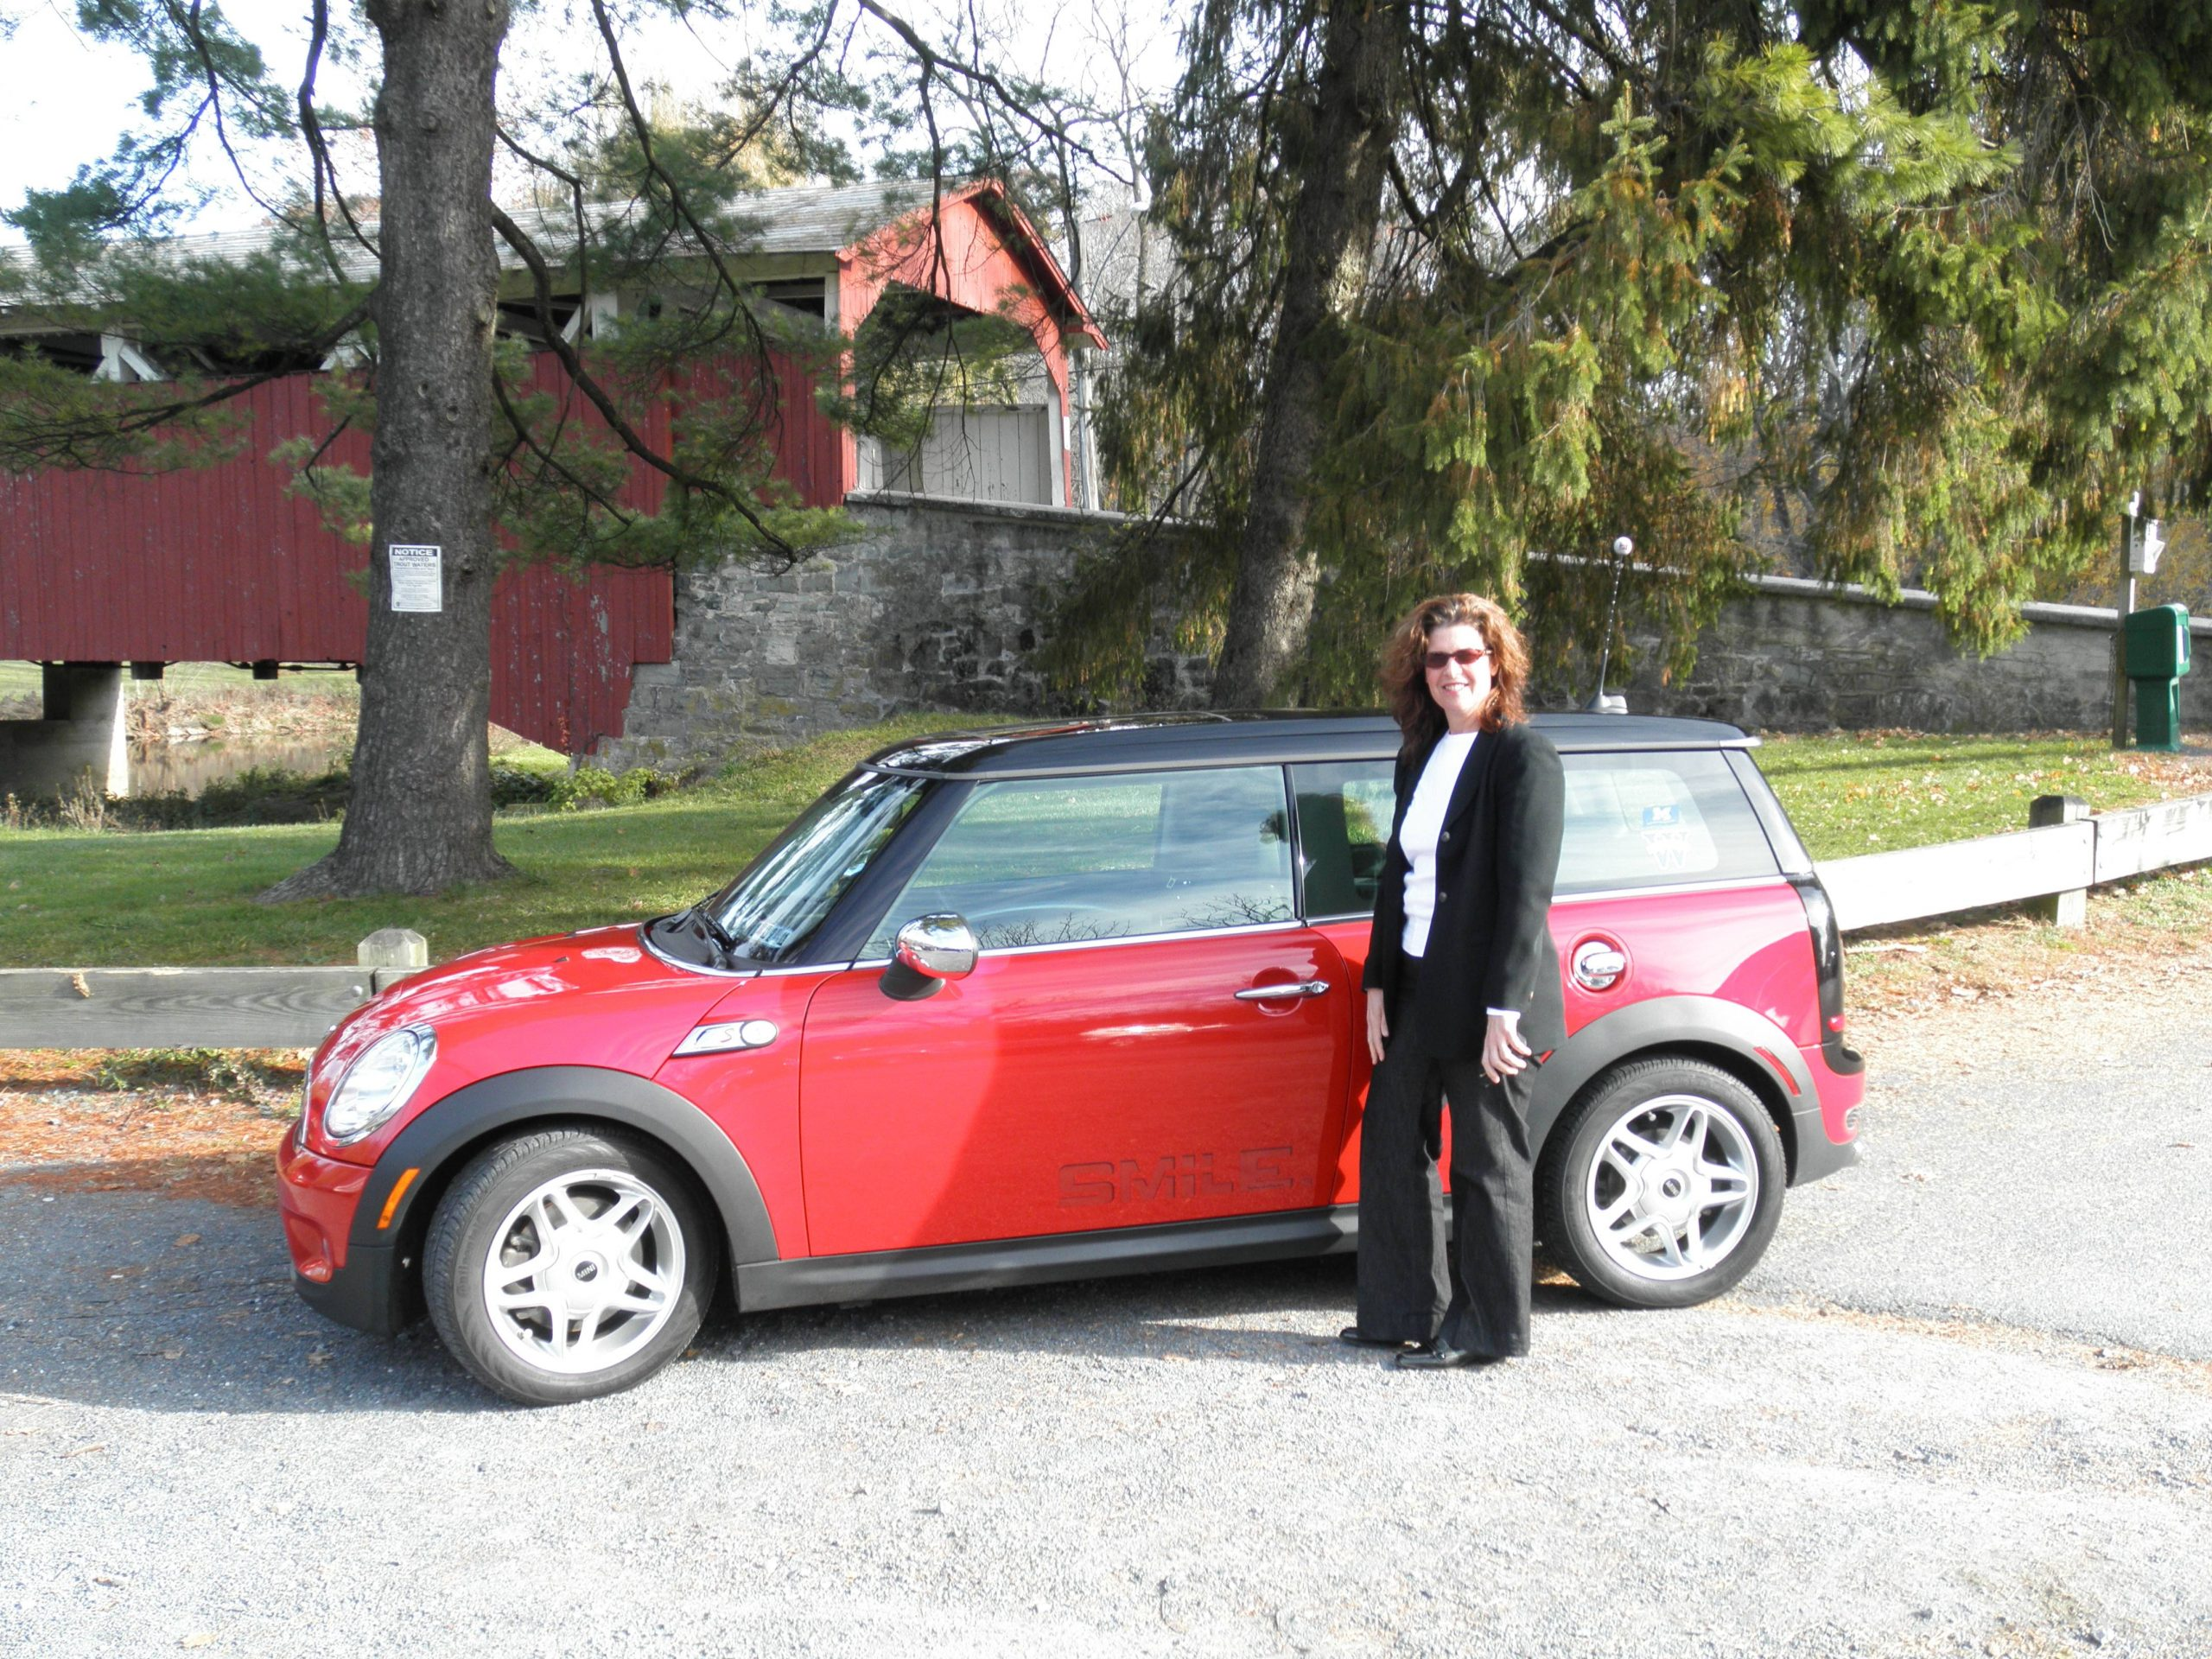 Red Mini Cooper with subtle smile decal by covered bridge in Pennsylvania